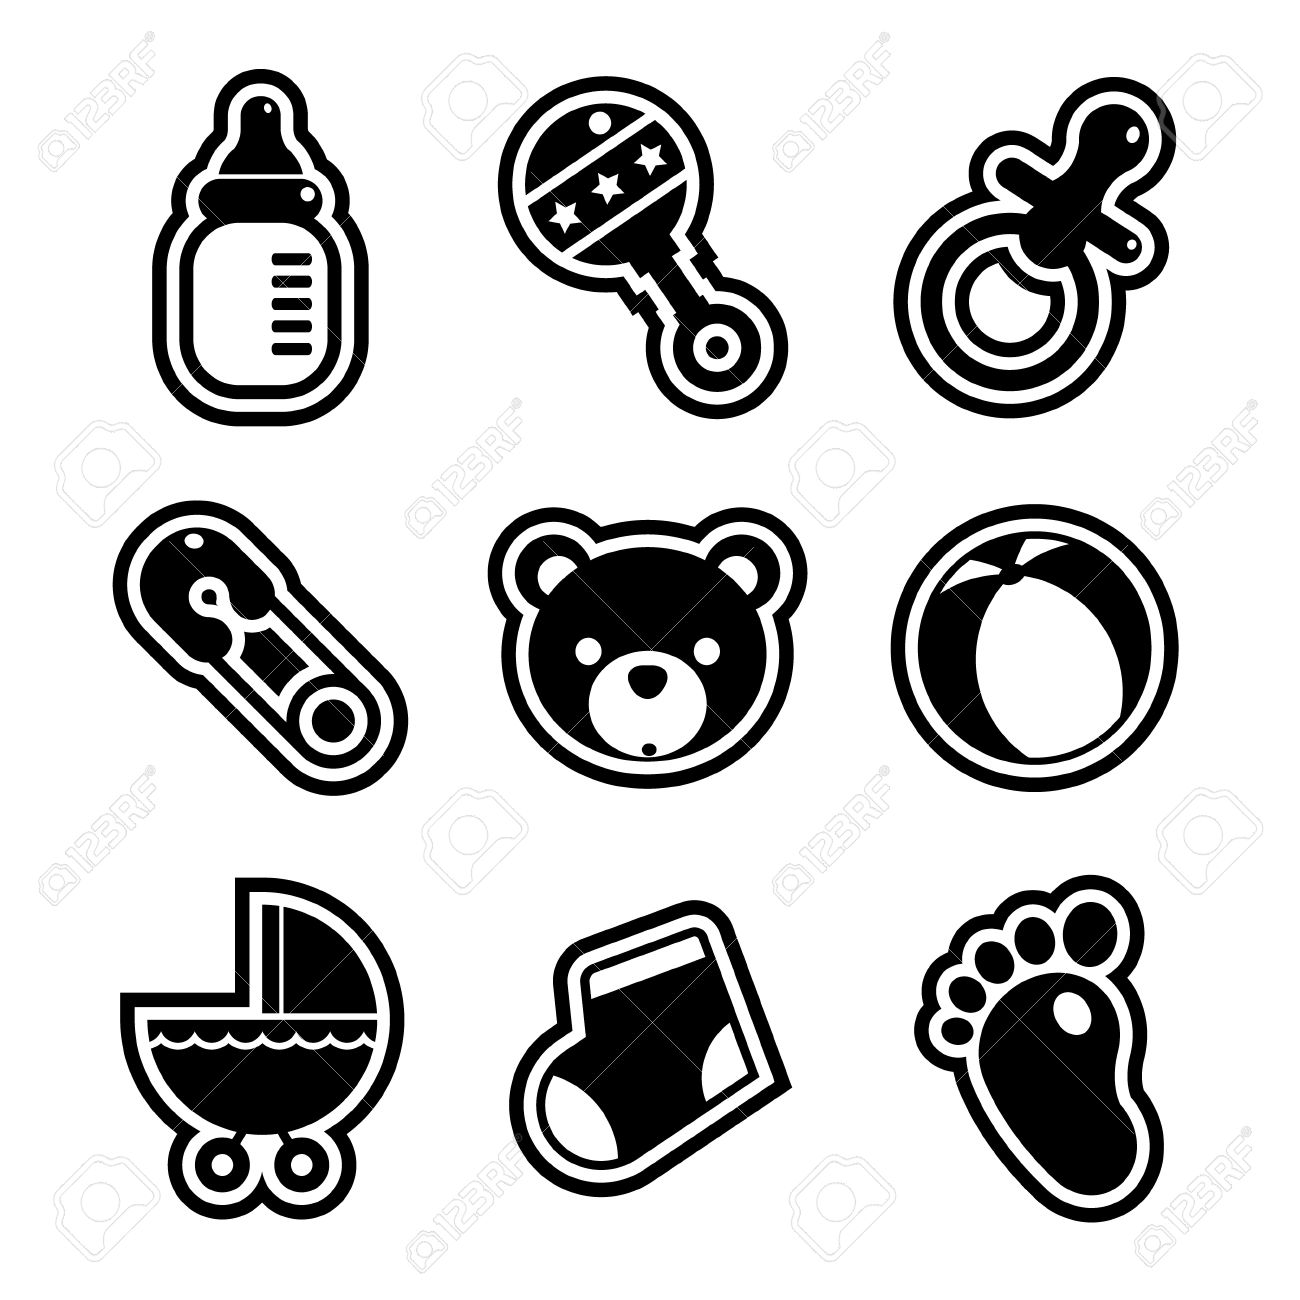 Set Of Black And White Baby Shower Icons Royalty Free Cliparts.